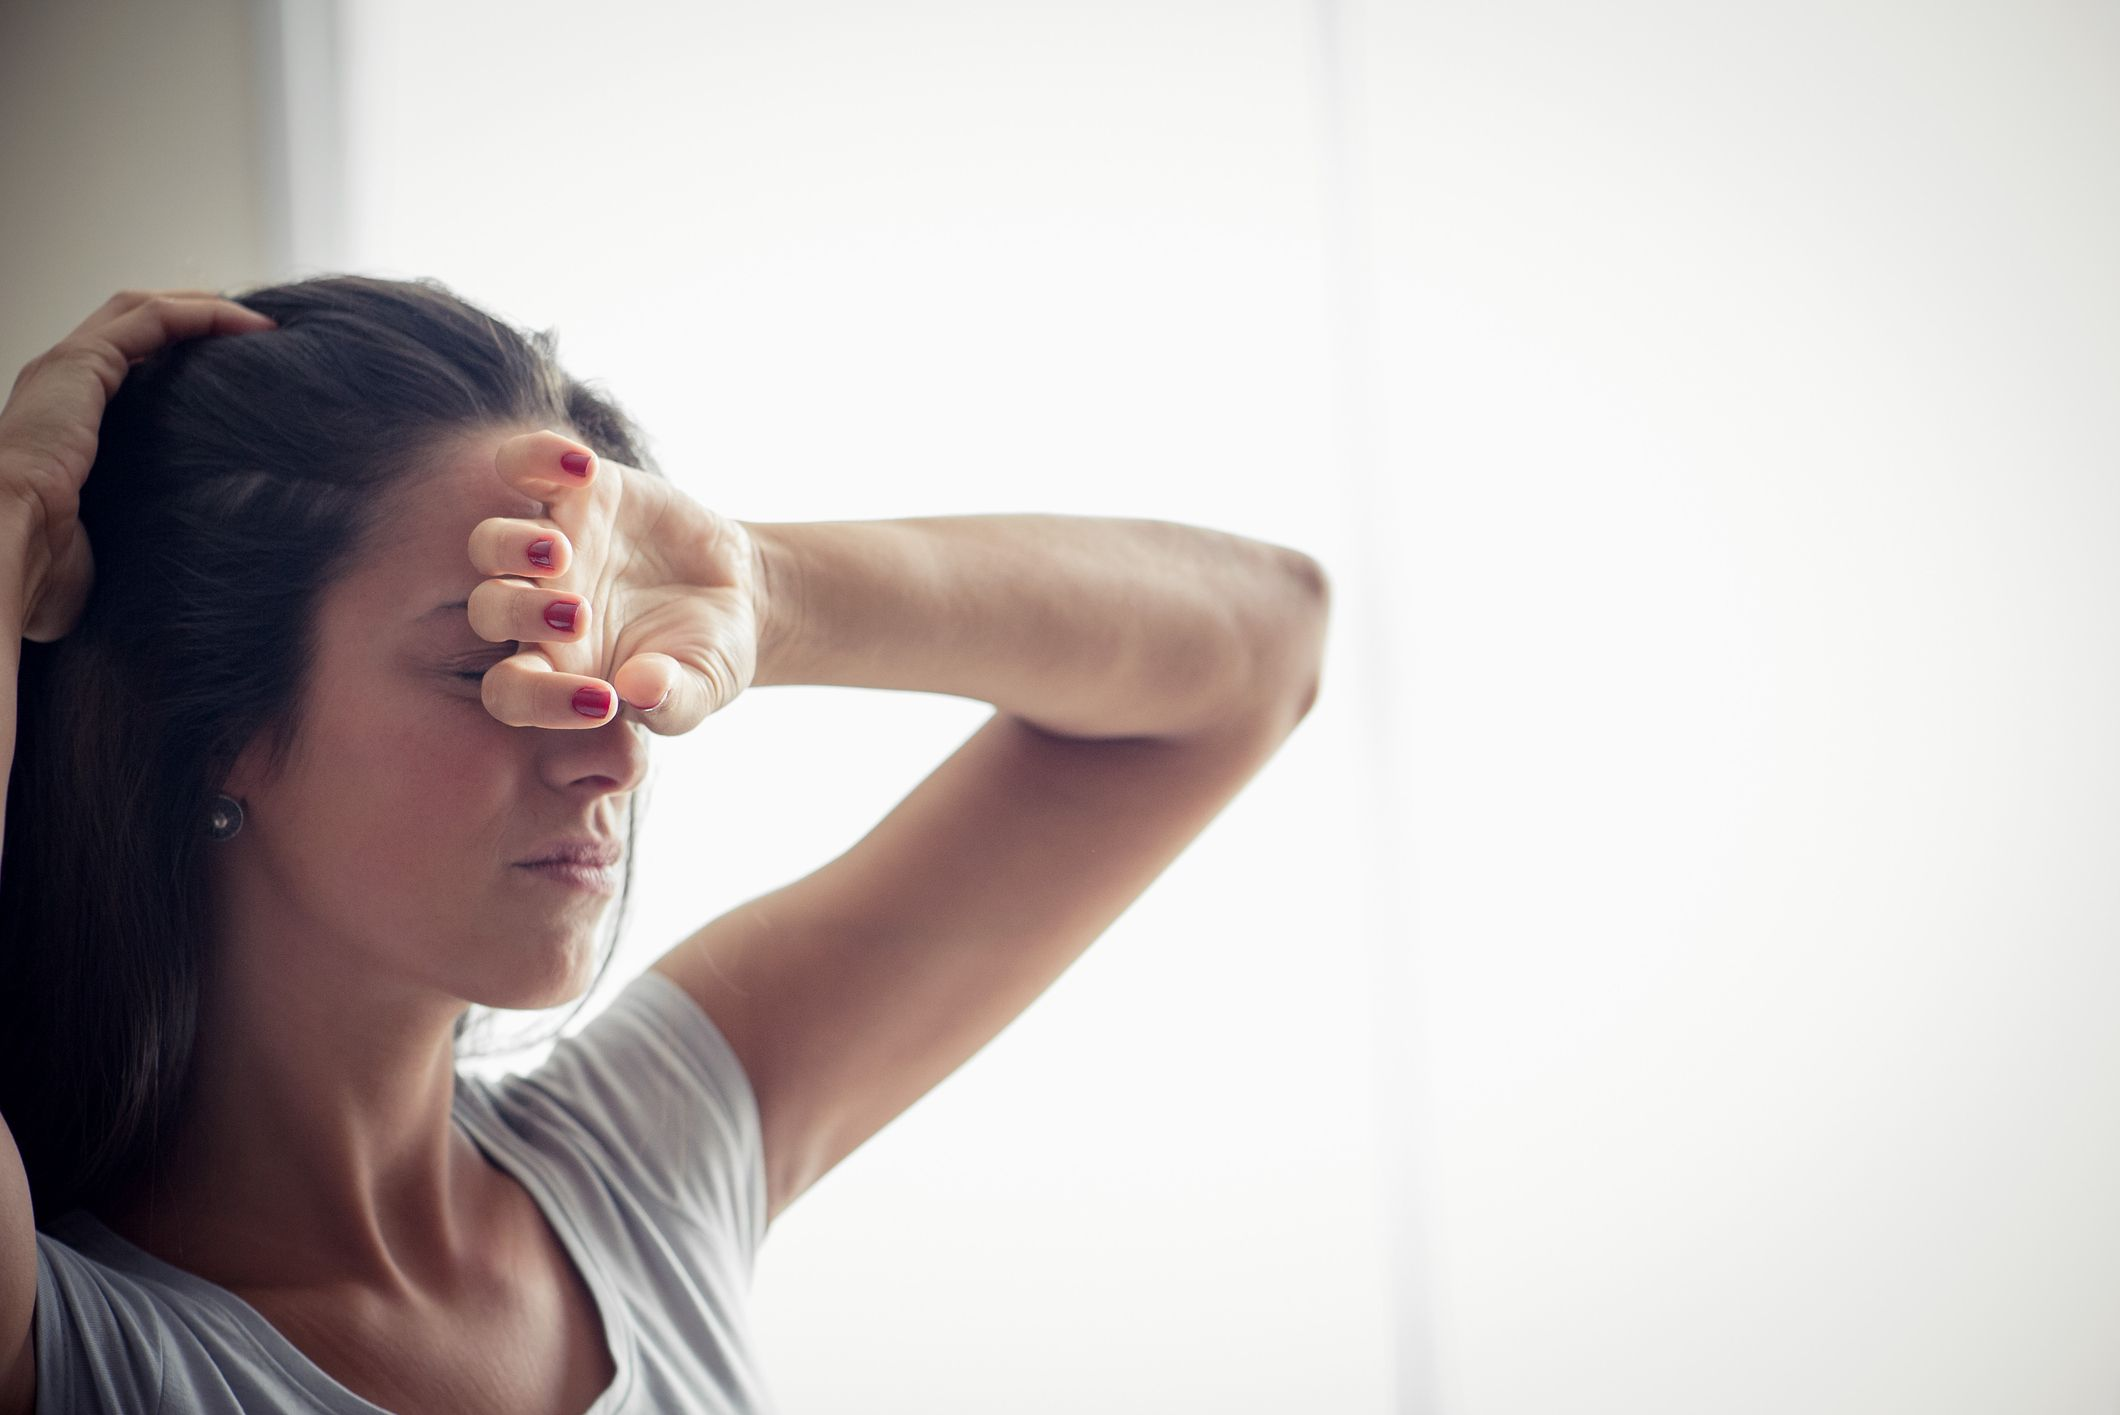 Woman in pain putting her arm up to her head